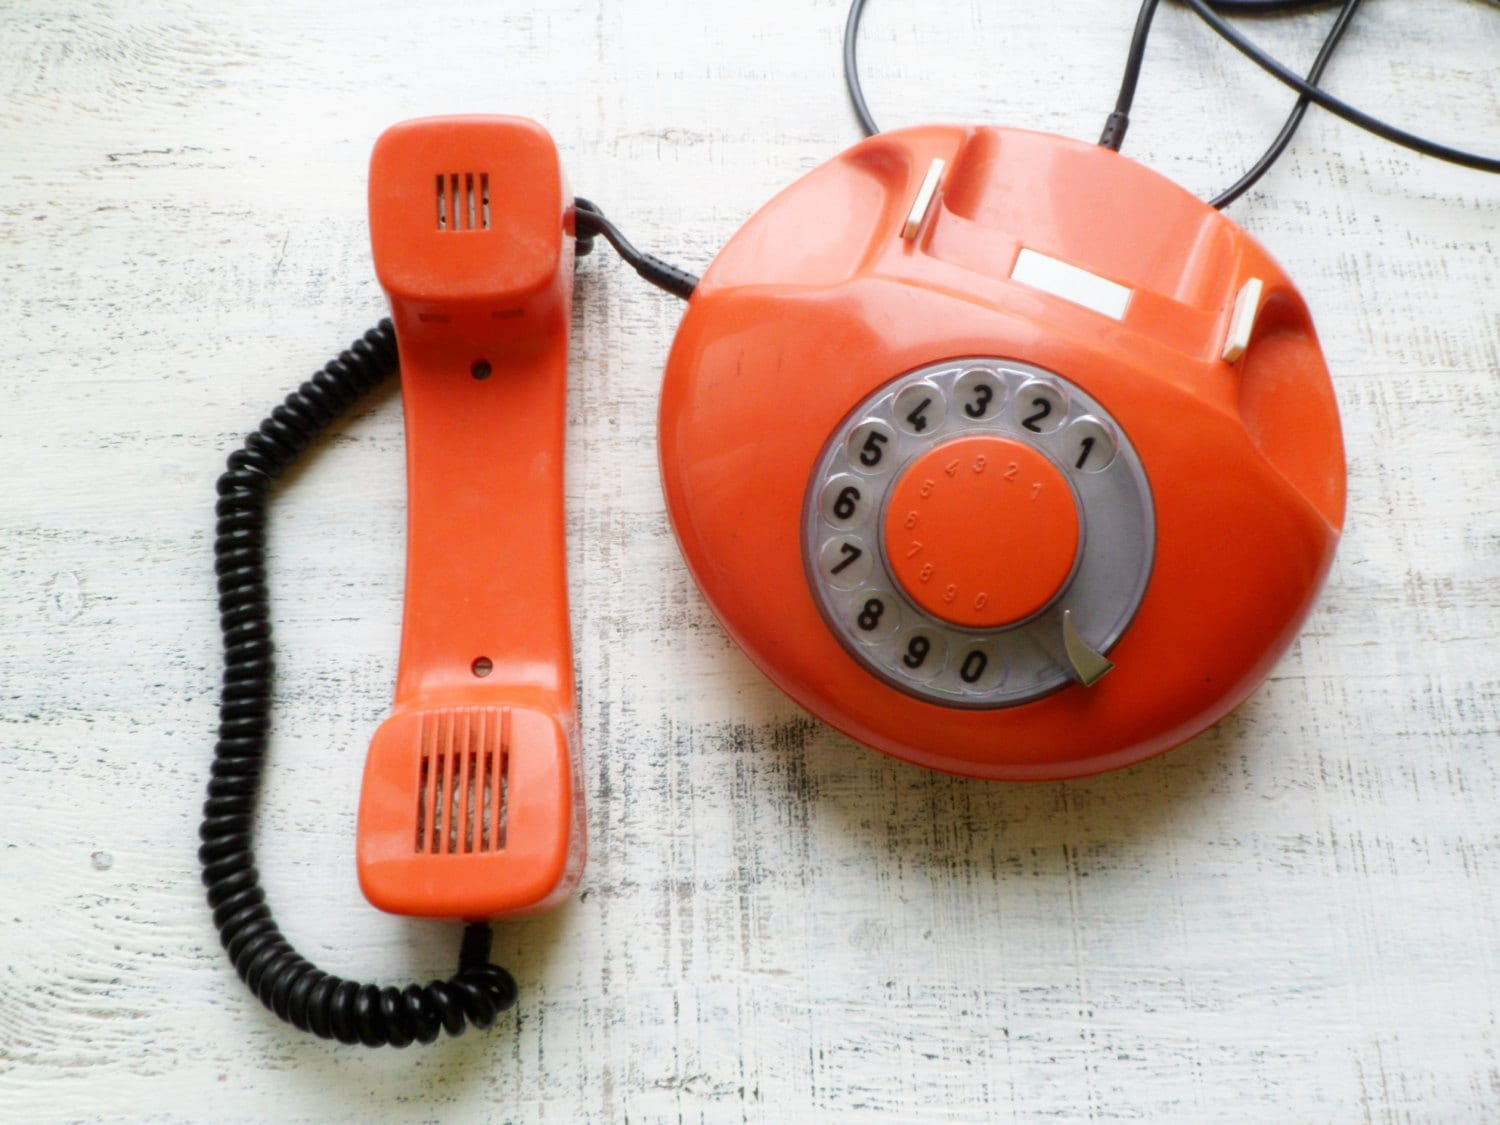 Vintage rotary phone, orange rotary phone, dial phone, Czechoslovakia, 1970s - HandyHappyVintage